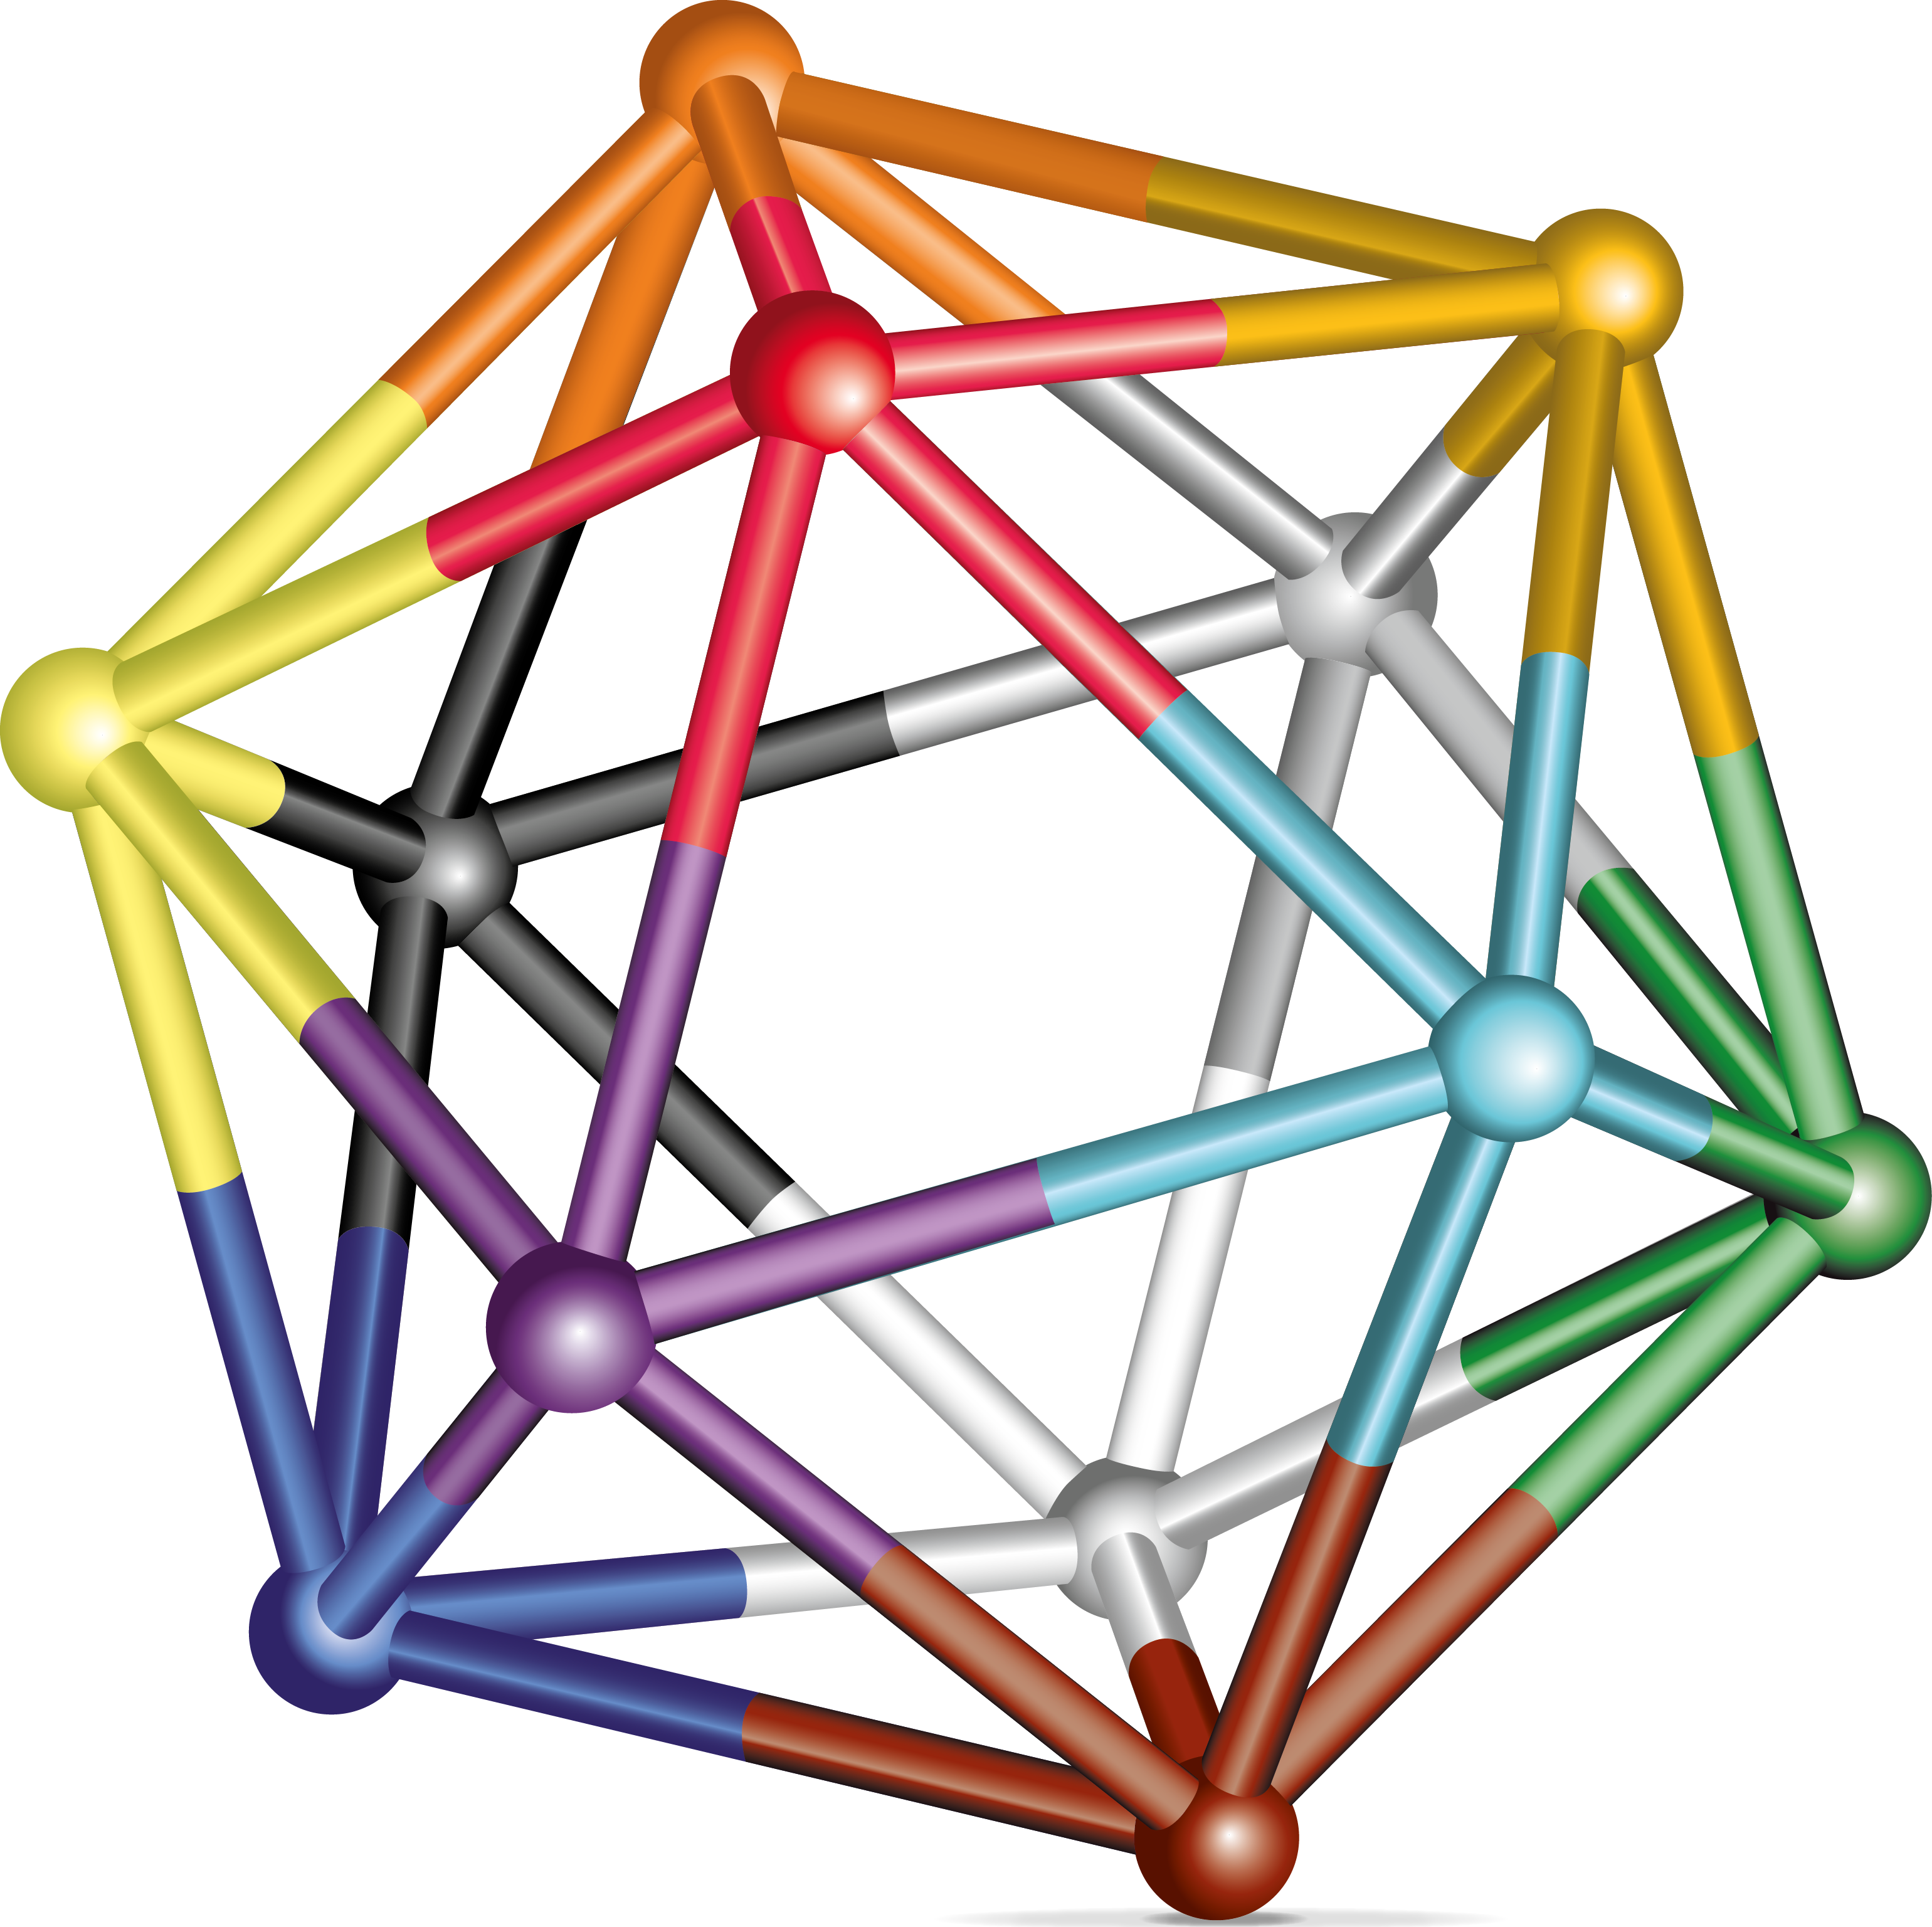 Malik Institute's Icosahedron graphic